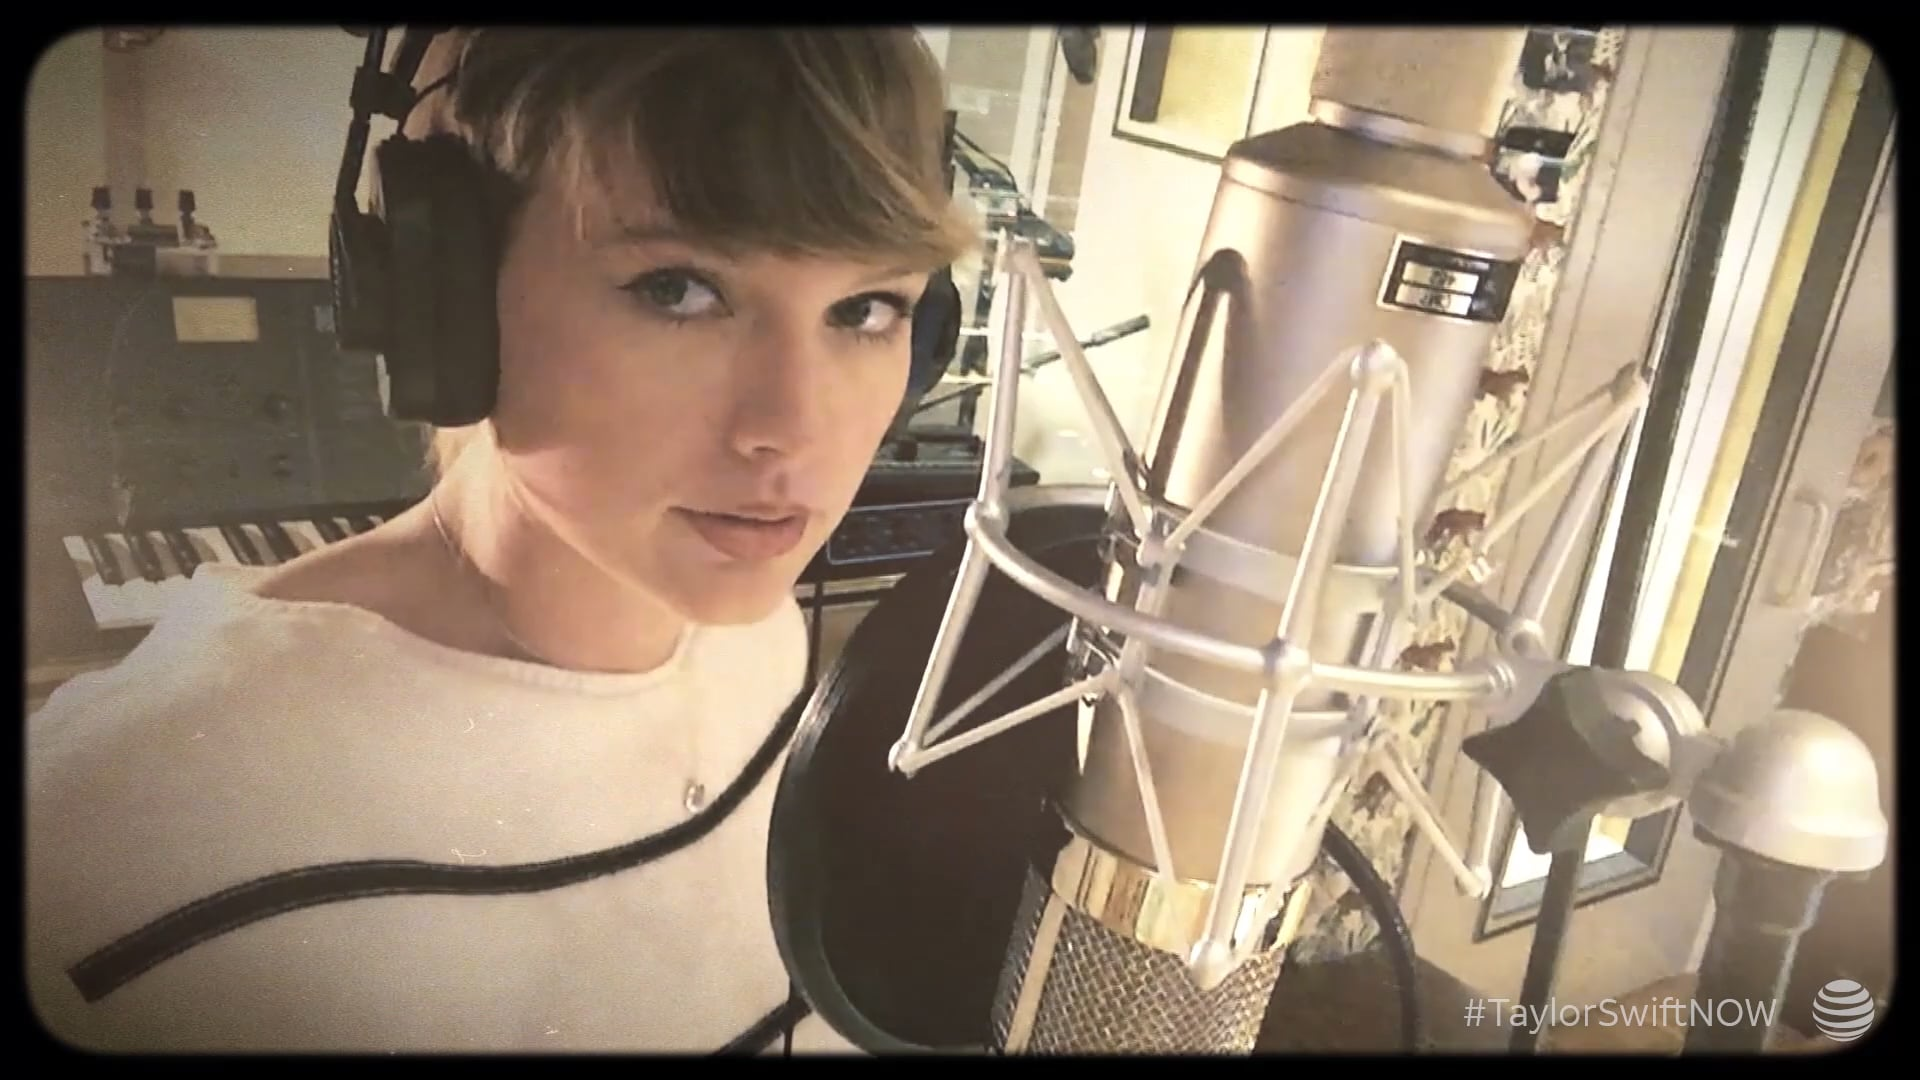 Taylor Swift Now    The Making of a Song